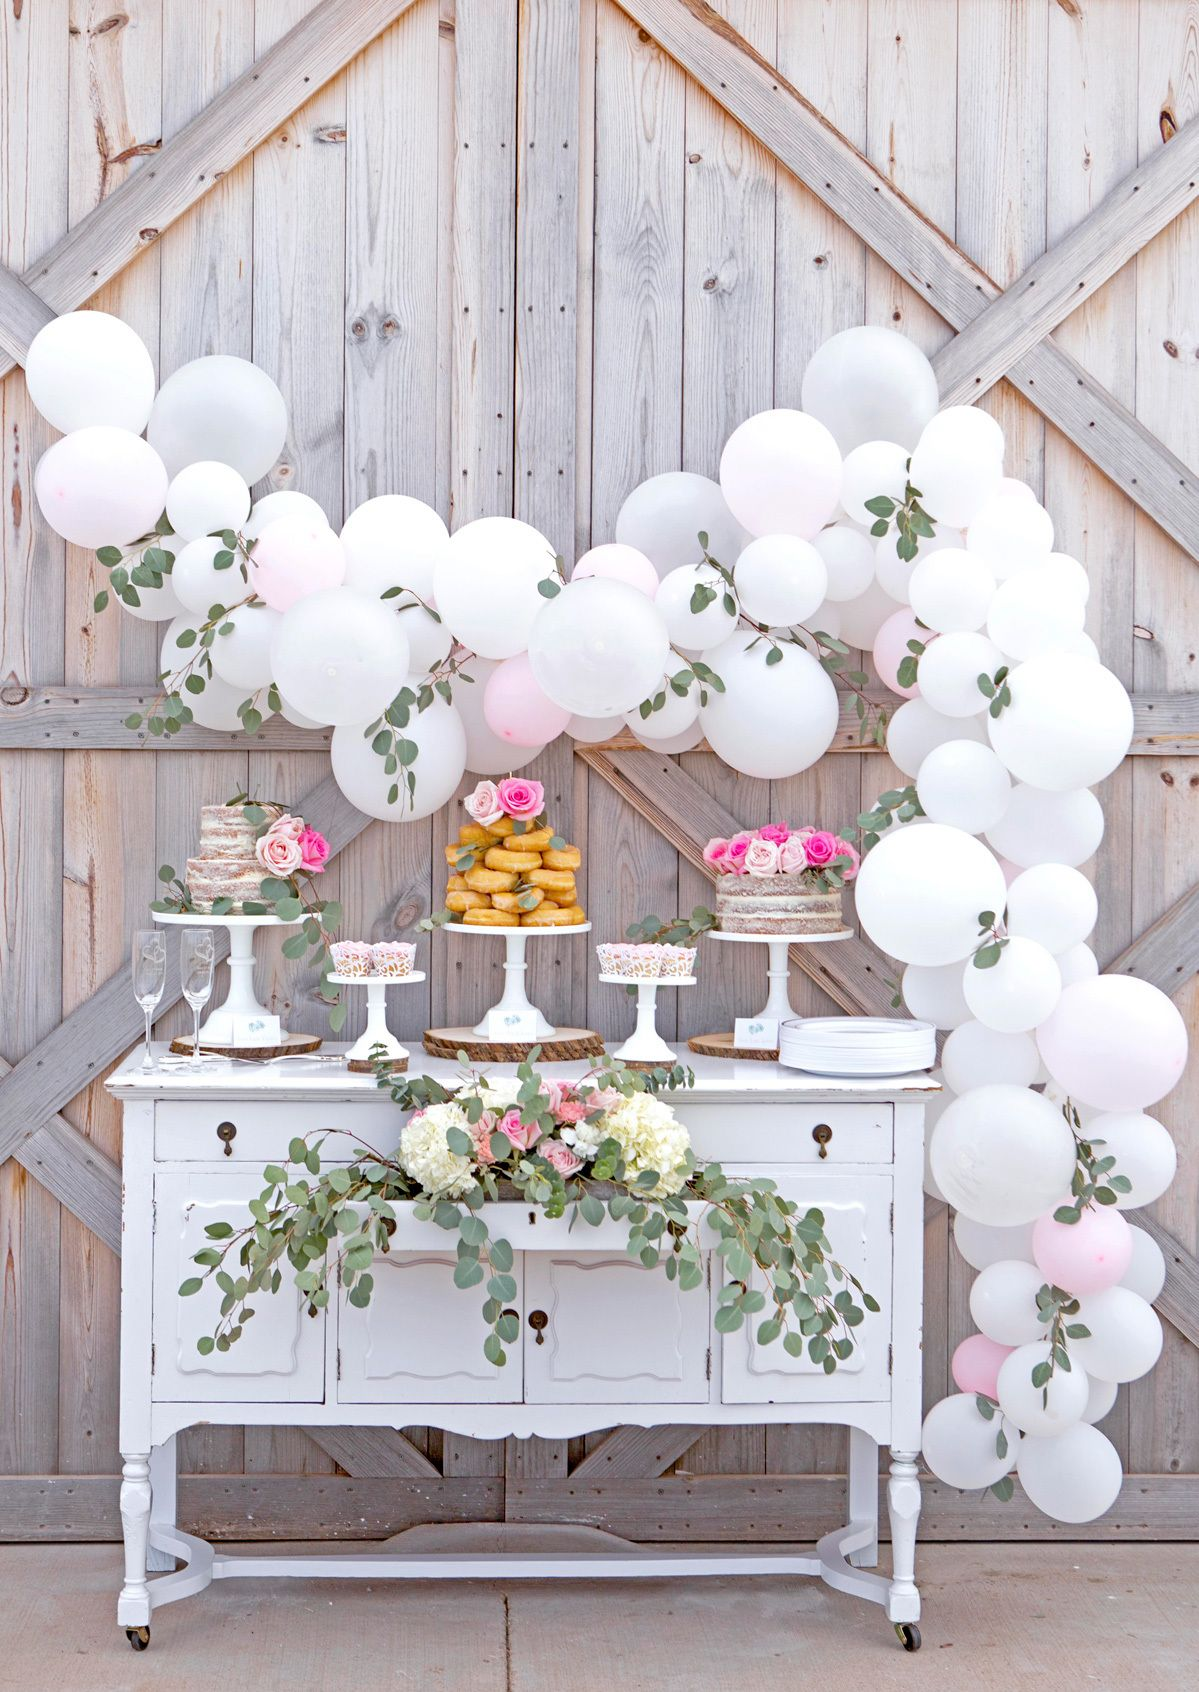 take a look at this gorgeous rustic wedding dessert table